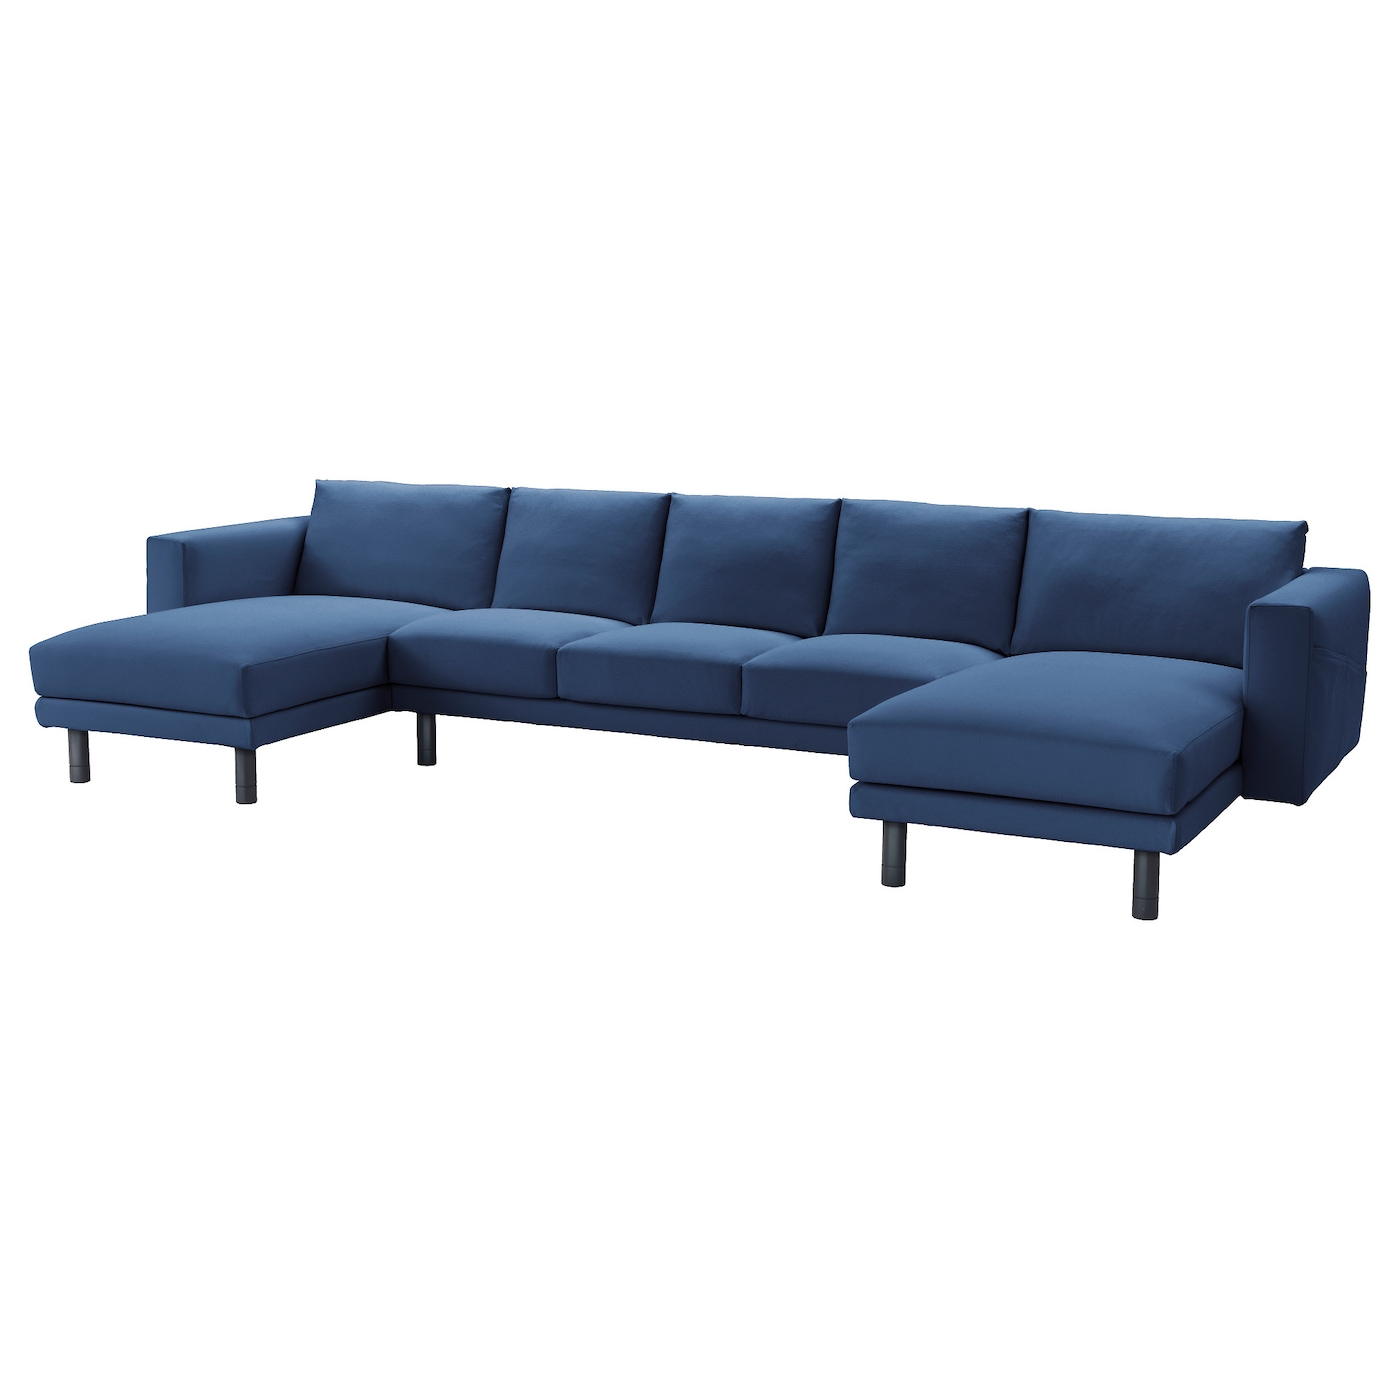 Norsborg 3 seat sofa with 2 chaise longues gr sbo dark for 3 seat sofa with chaise